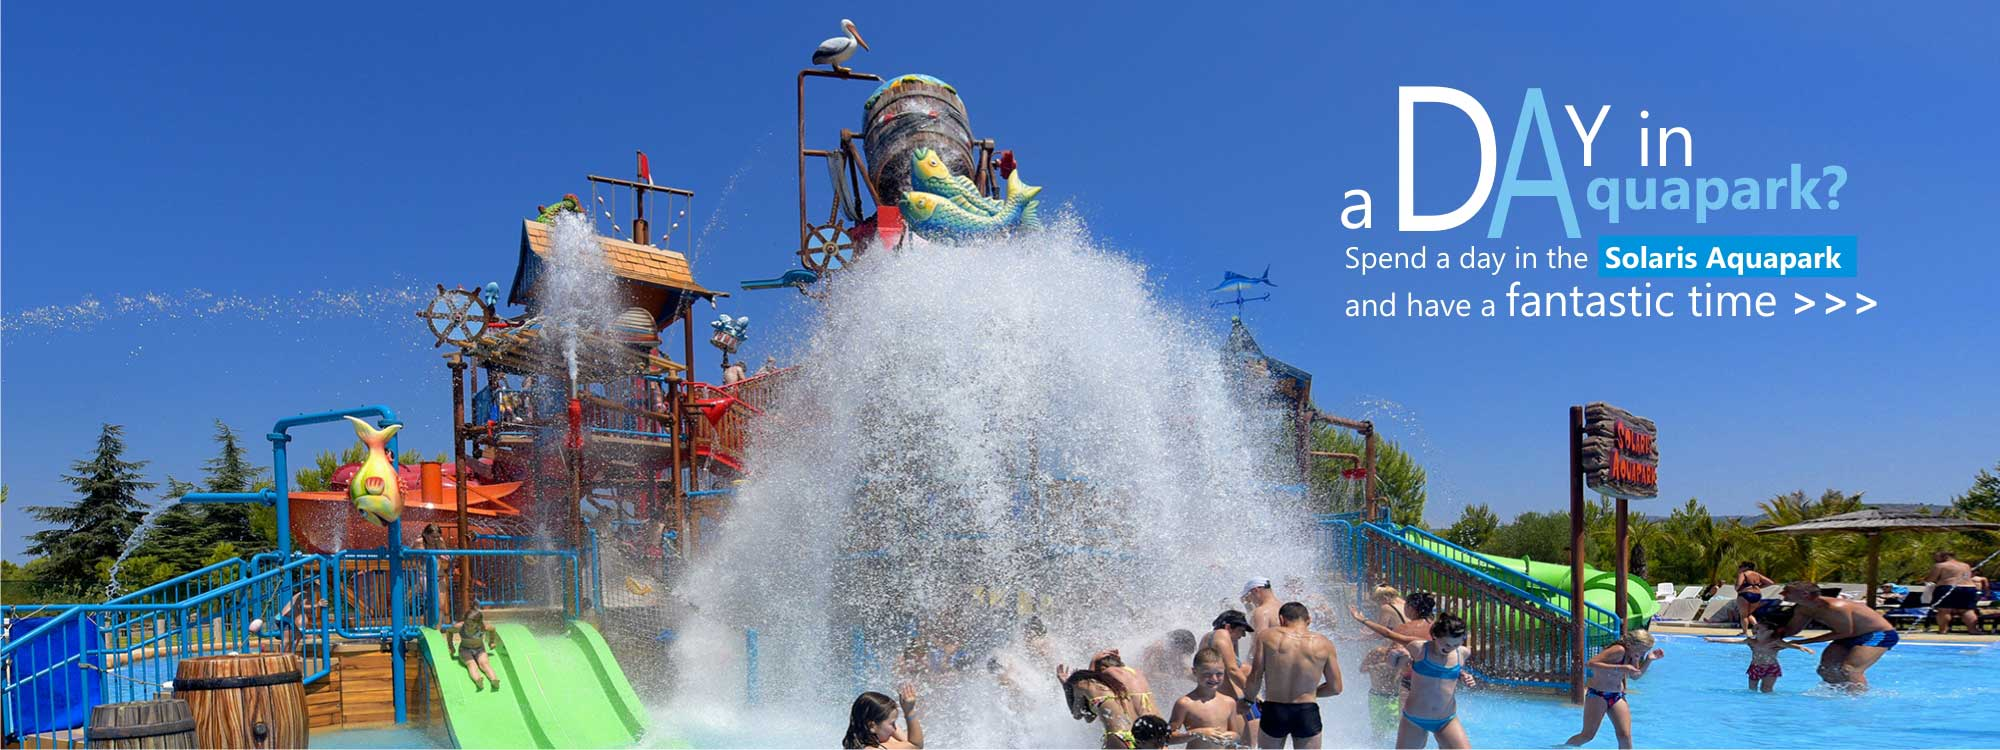 A-day-in-Solaris-Aquapark